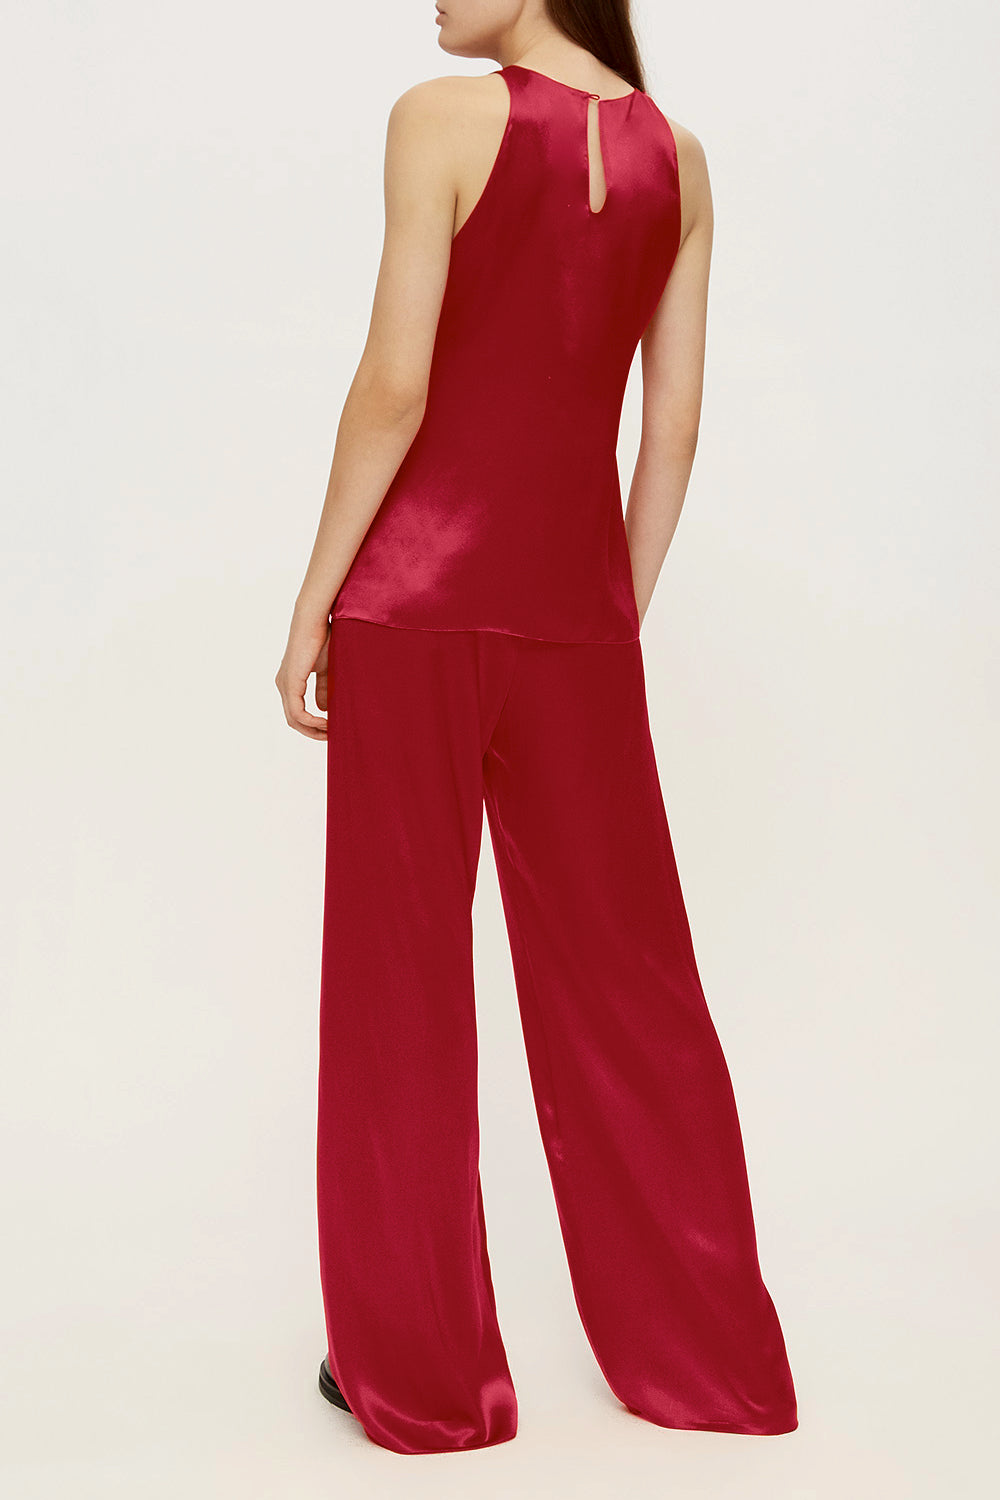 Women pajama fluid pant in cherry red